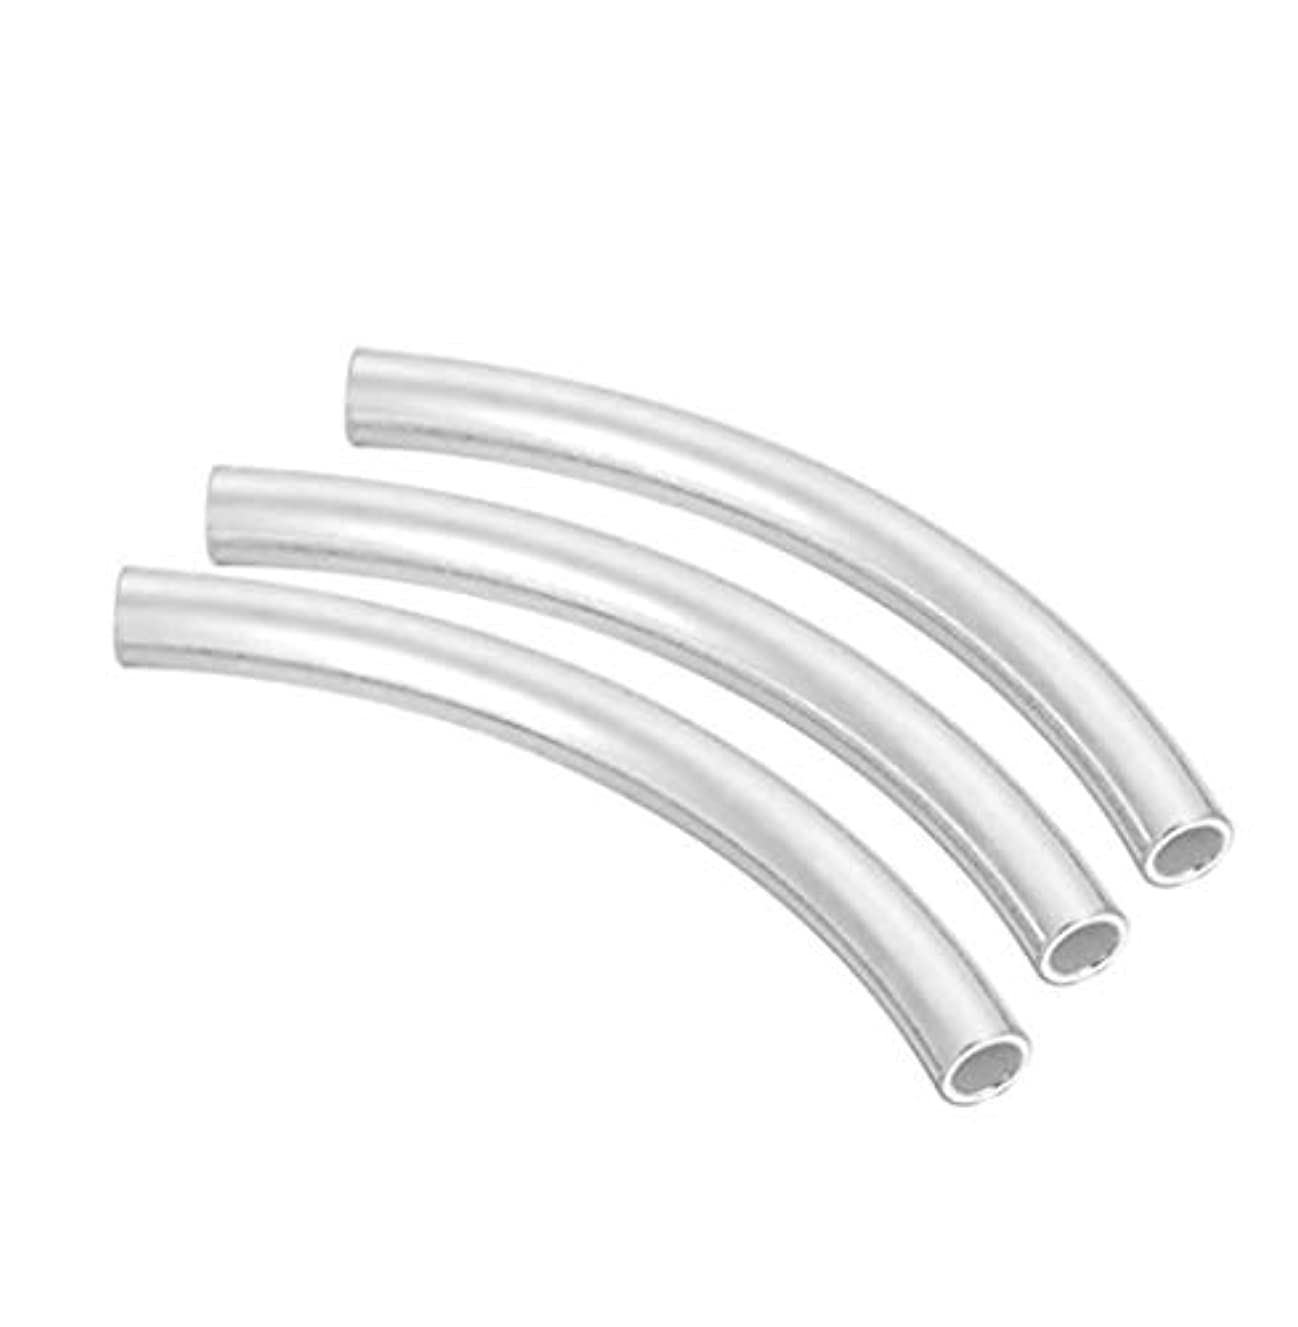 20pcs Sterling Silver Sleek Curved Noodle Tube Connector Beads 15mm x 1.5mm (~1.2mm Hole) SS214-BB